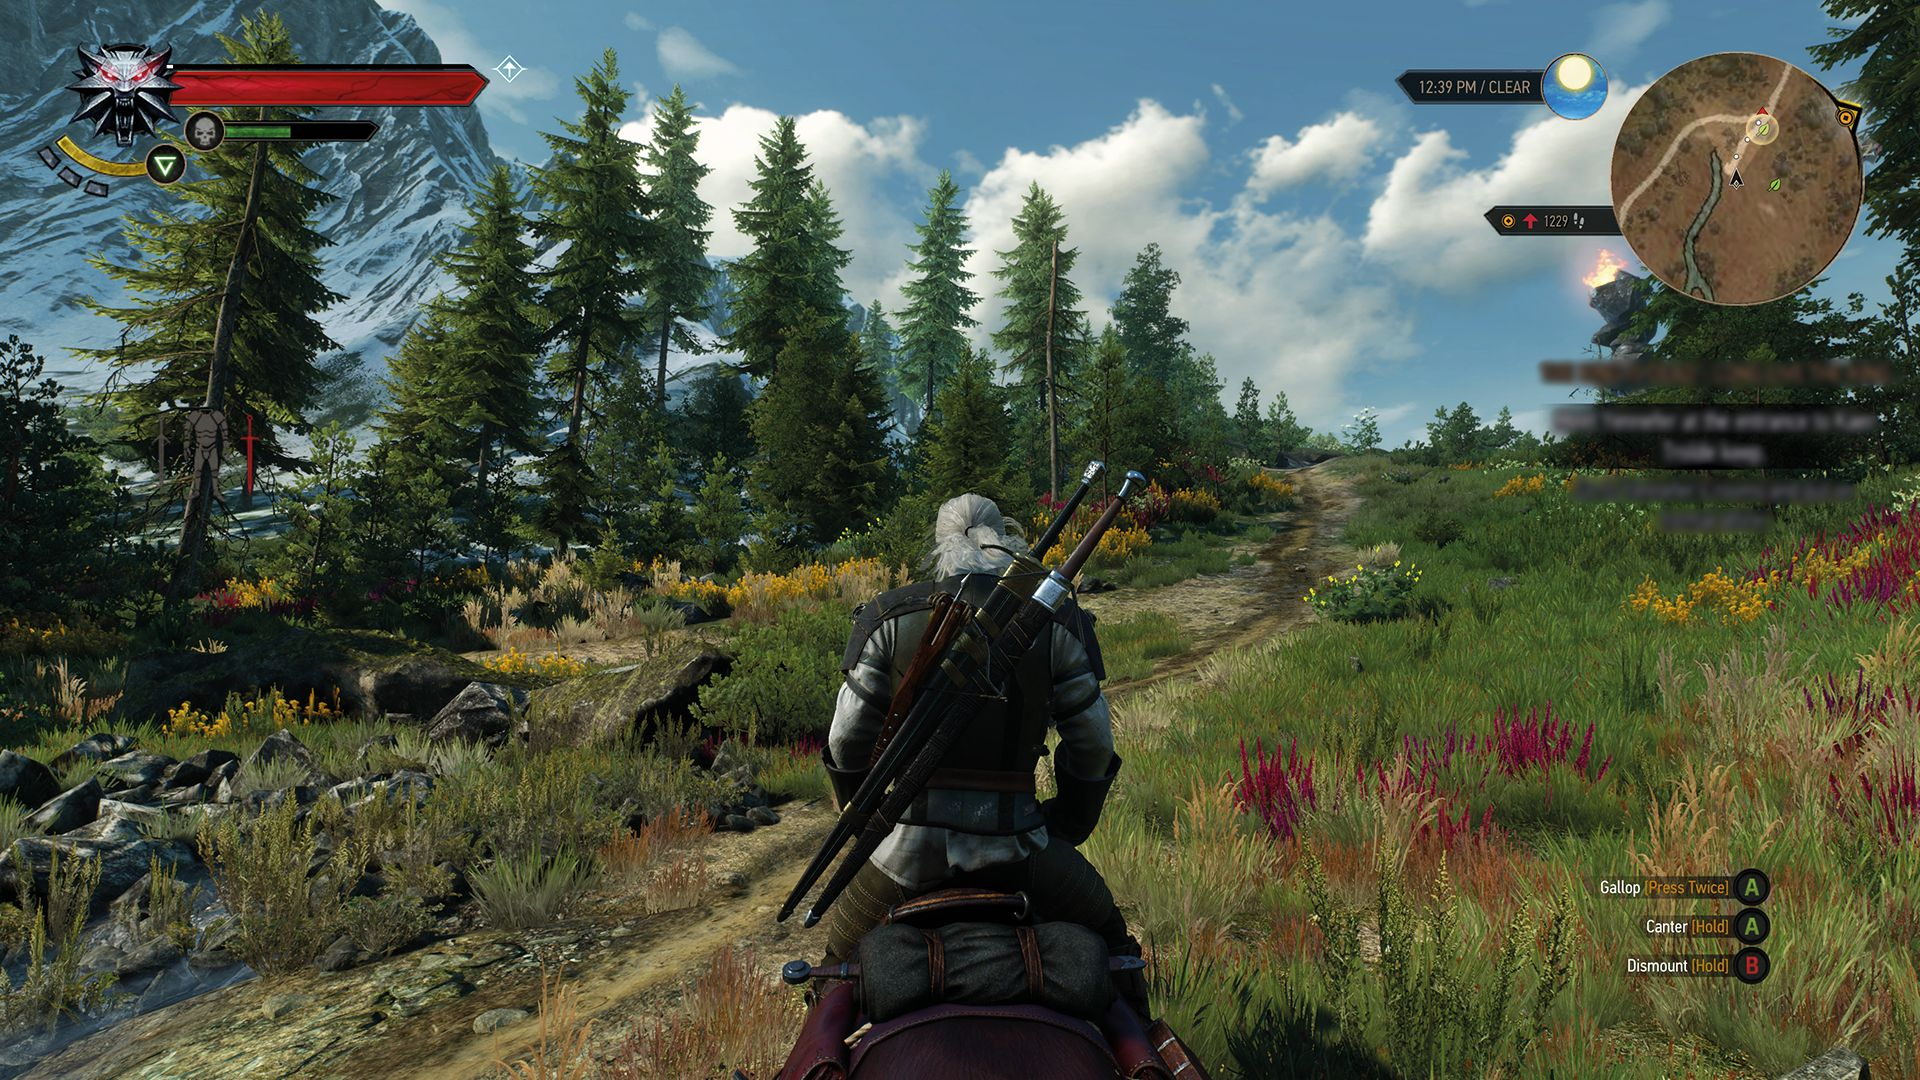 the_witcher_3_wild_hunt_maybe_i_should_pick_some_of_these_flowers_for_yen_sorceresses_dig_flowers_1430900908